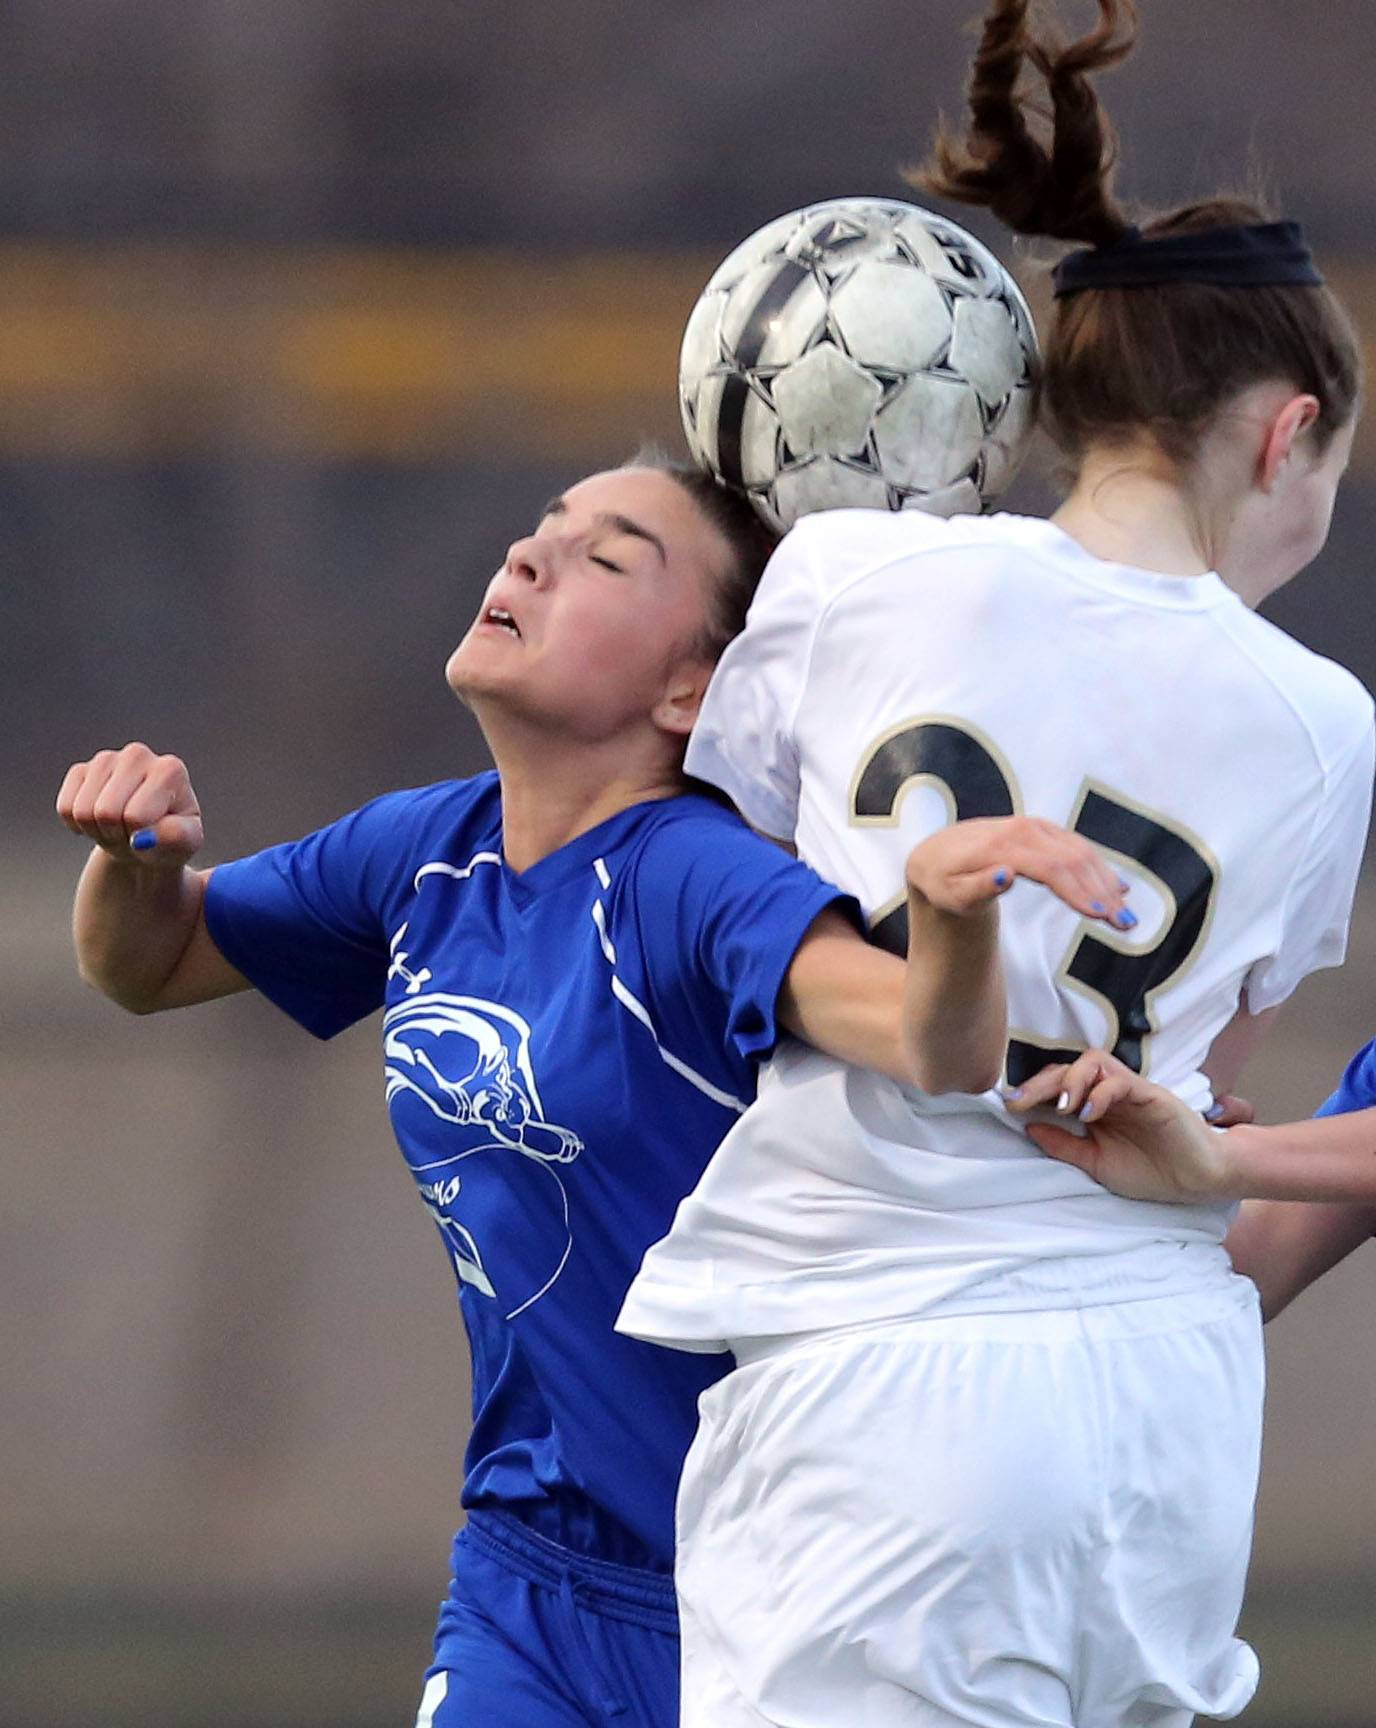 Vernon Hills' Natalina Mariduena, left, and Grayslake North's Meghan McCue go up for a header Wednesday night at Grayslake North.